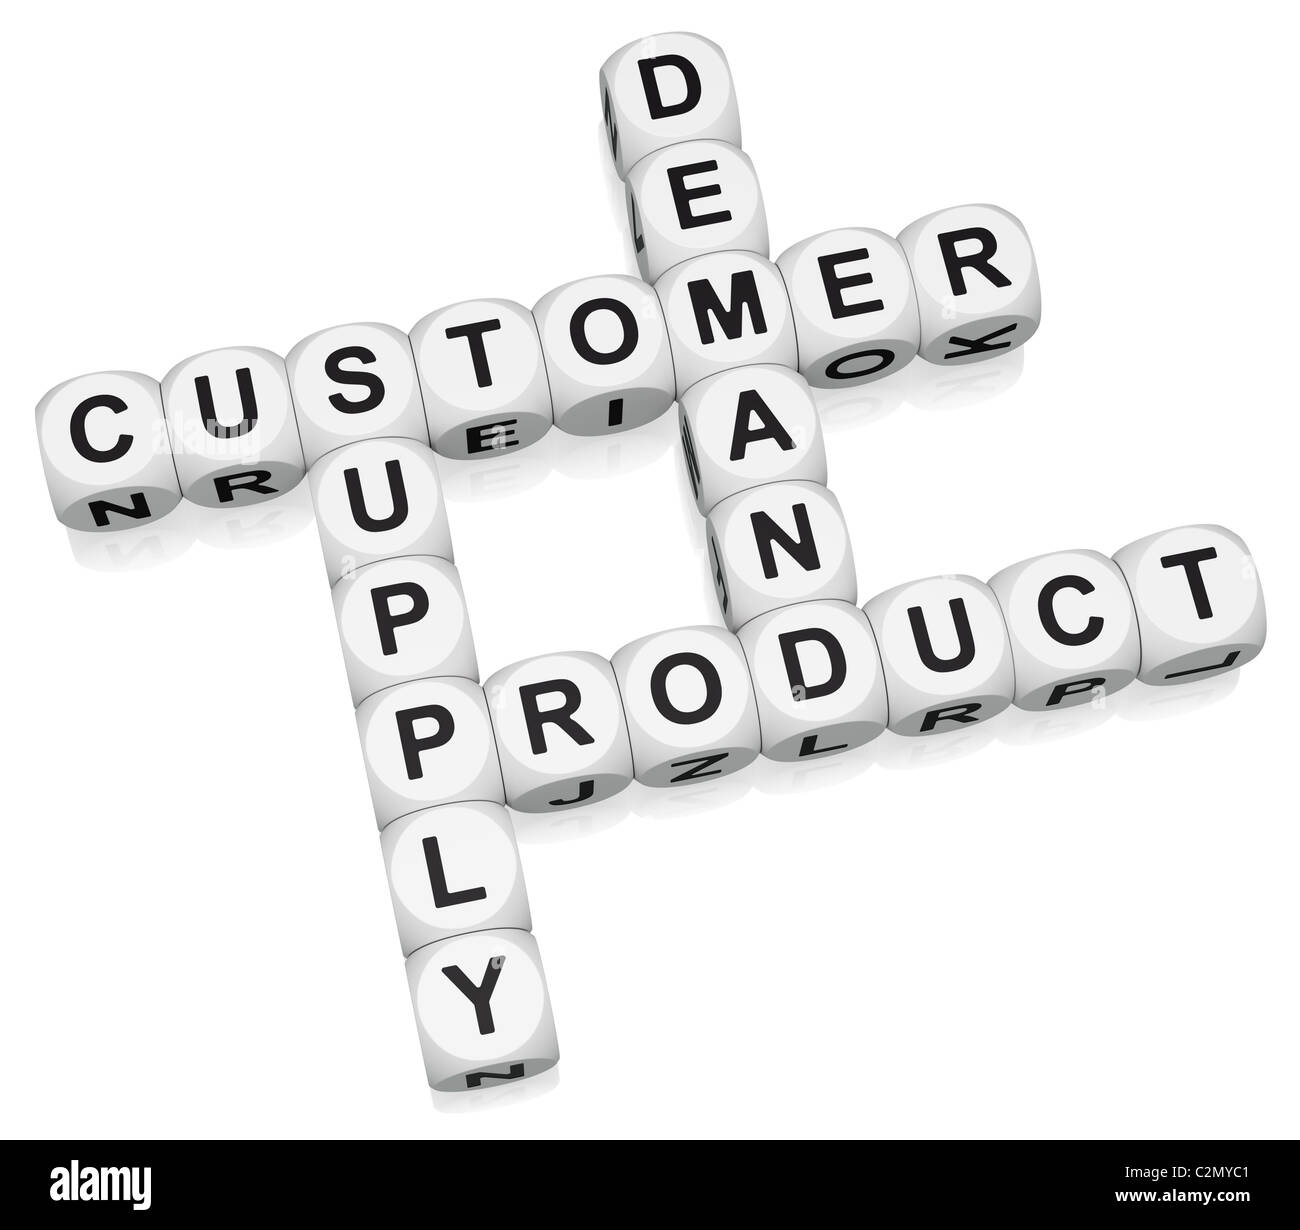 Product retail cycle crossword on white background - Stock Image